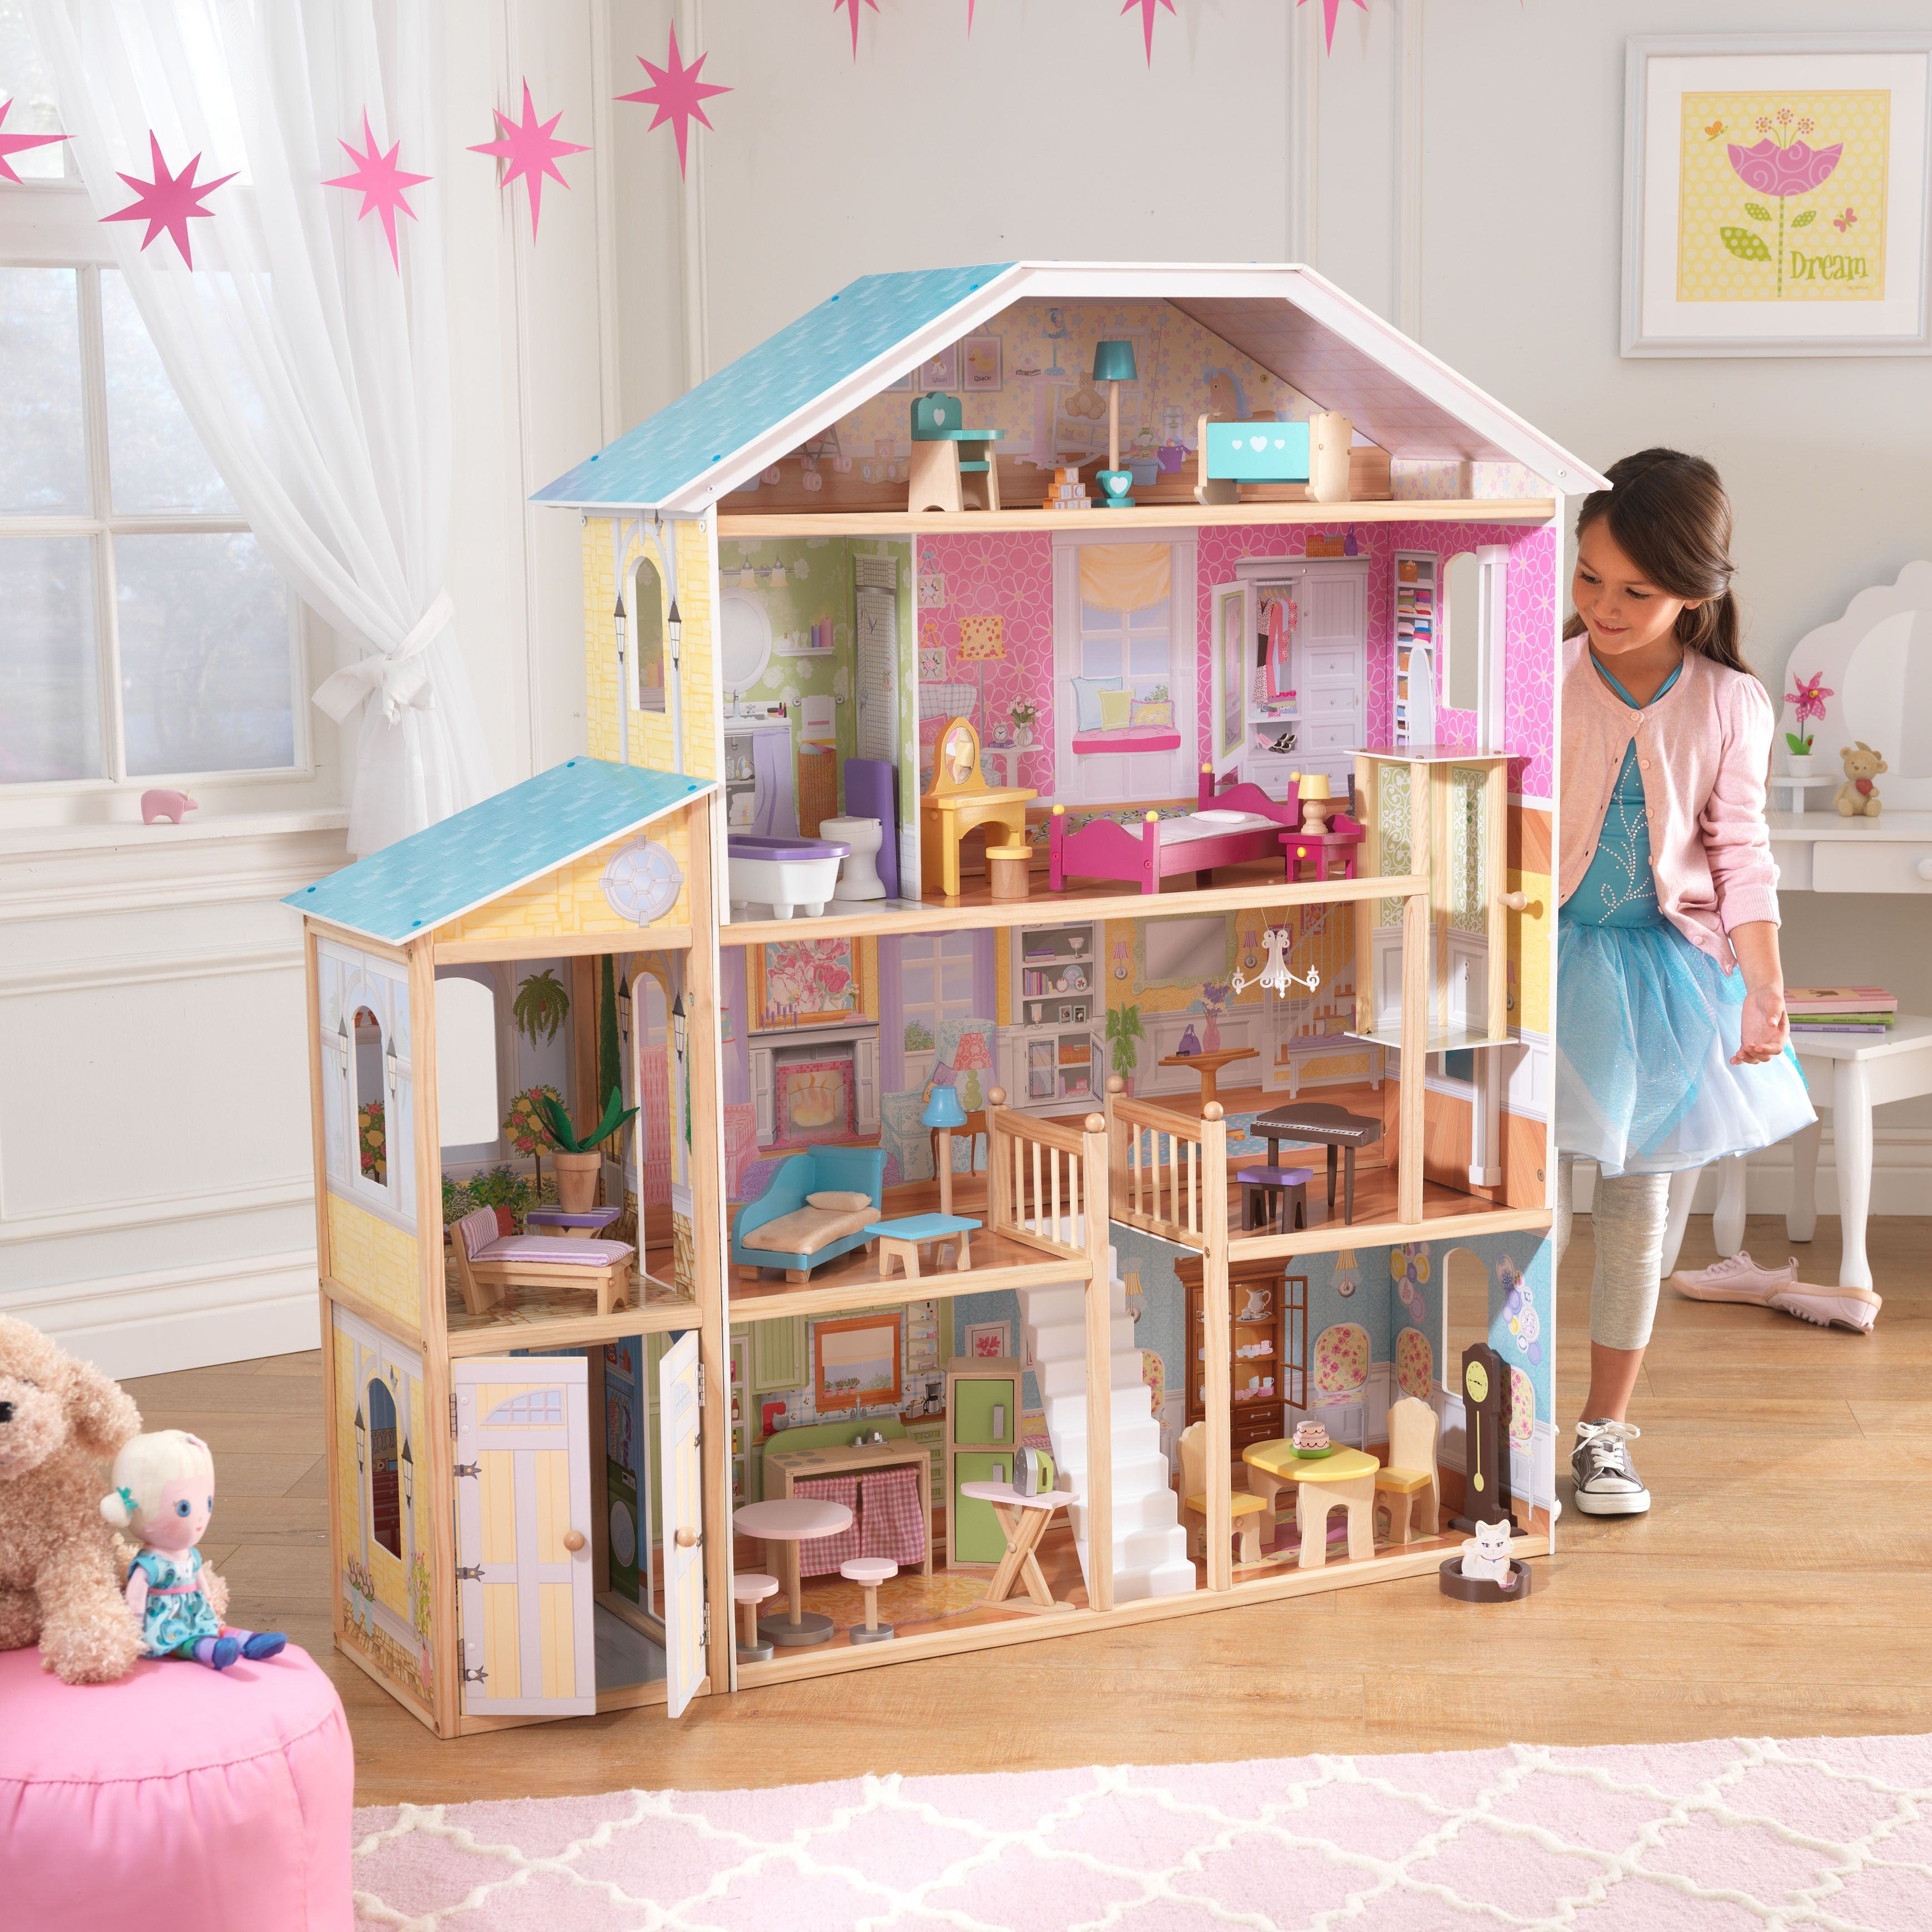 1000+ images about Dollhouses and Doll Furniture on Pinterest - ^